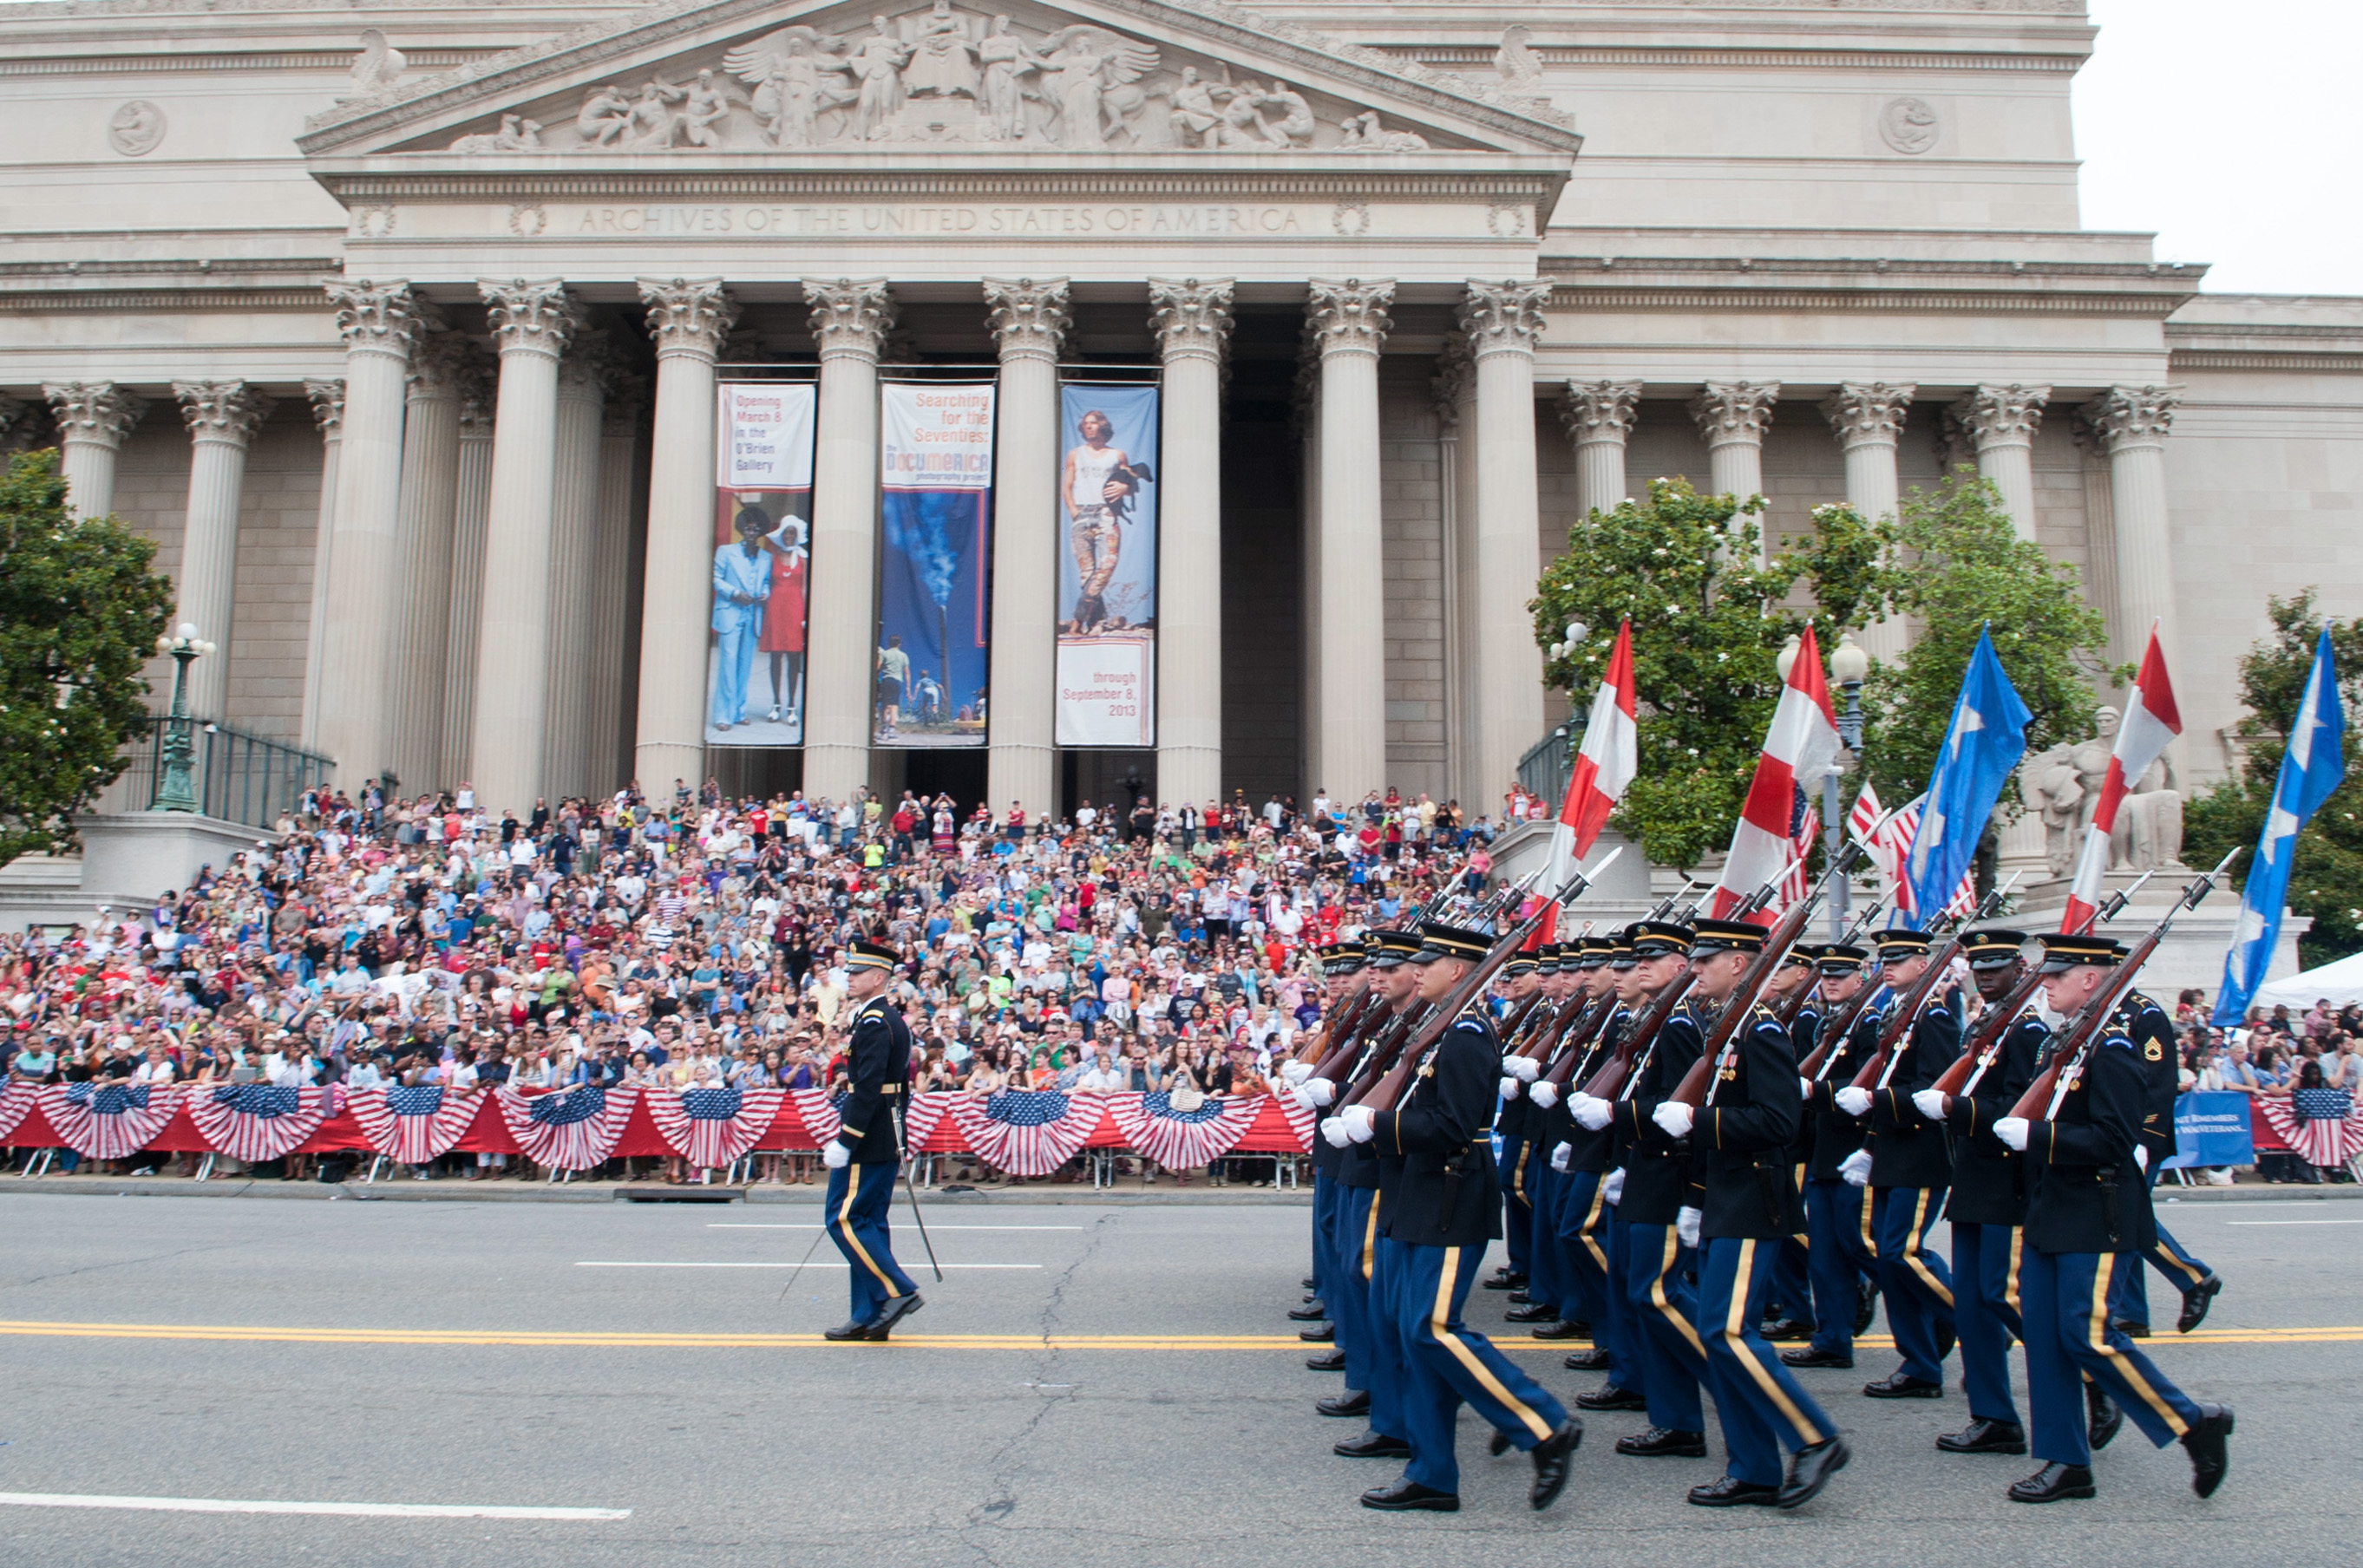 U.S. Army Soldiers marching in the National Memorial Day Parade at the National Archives Building